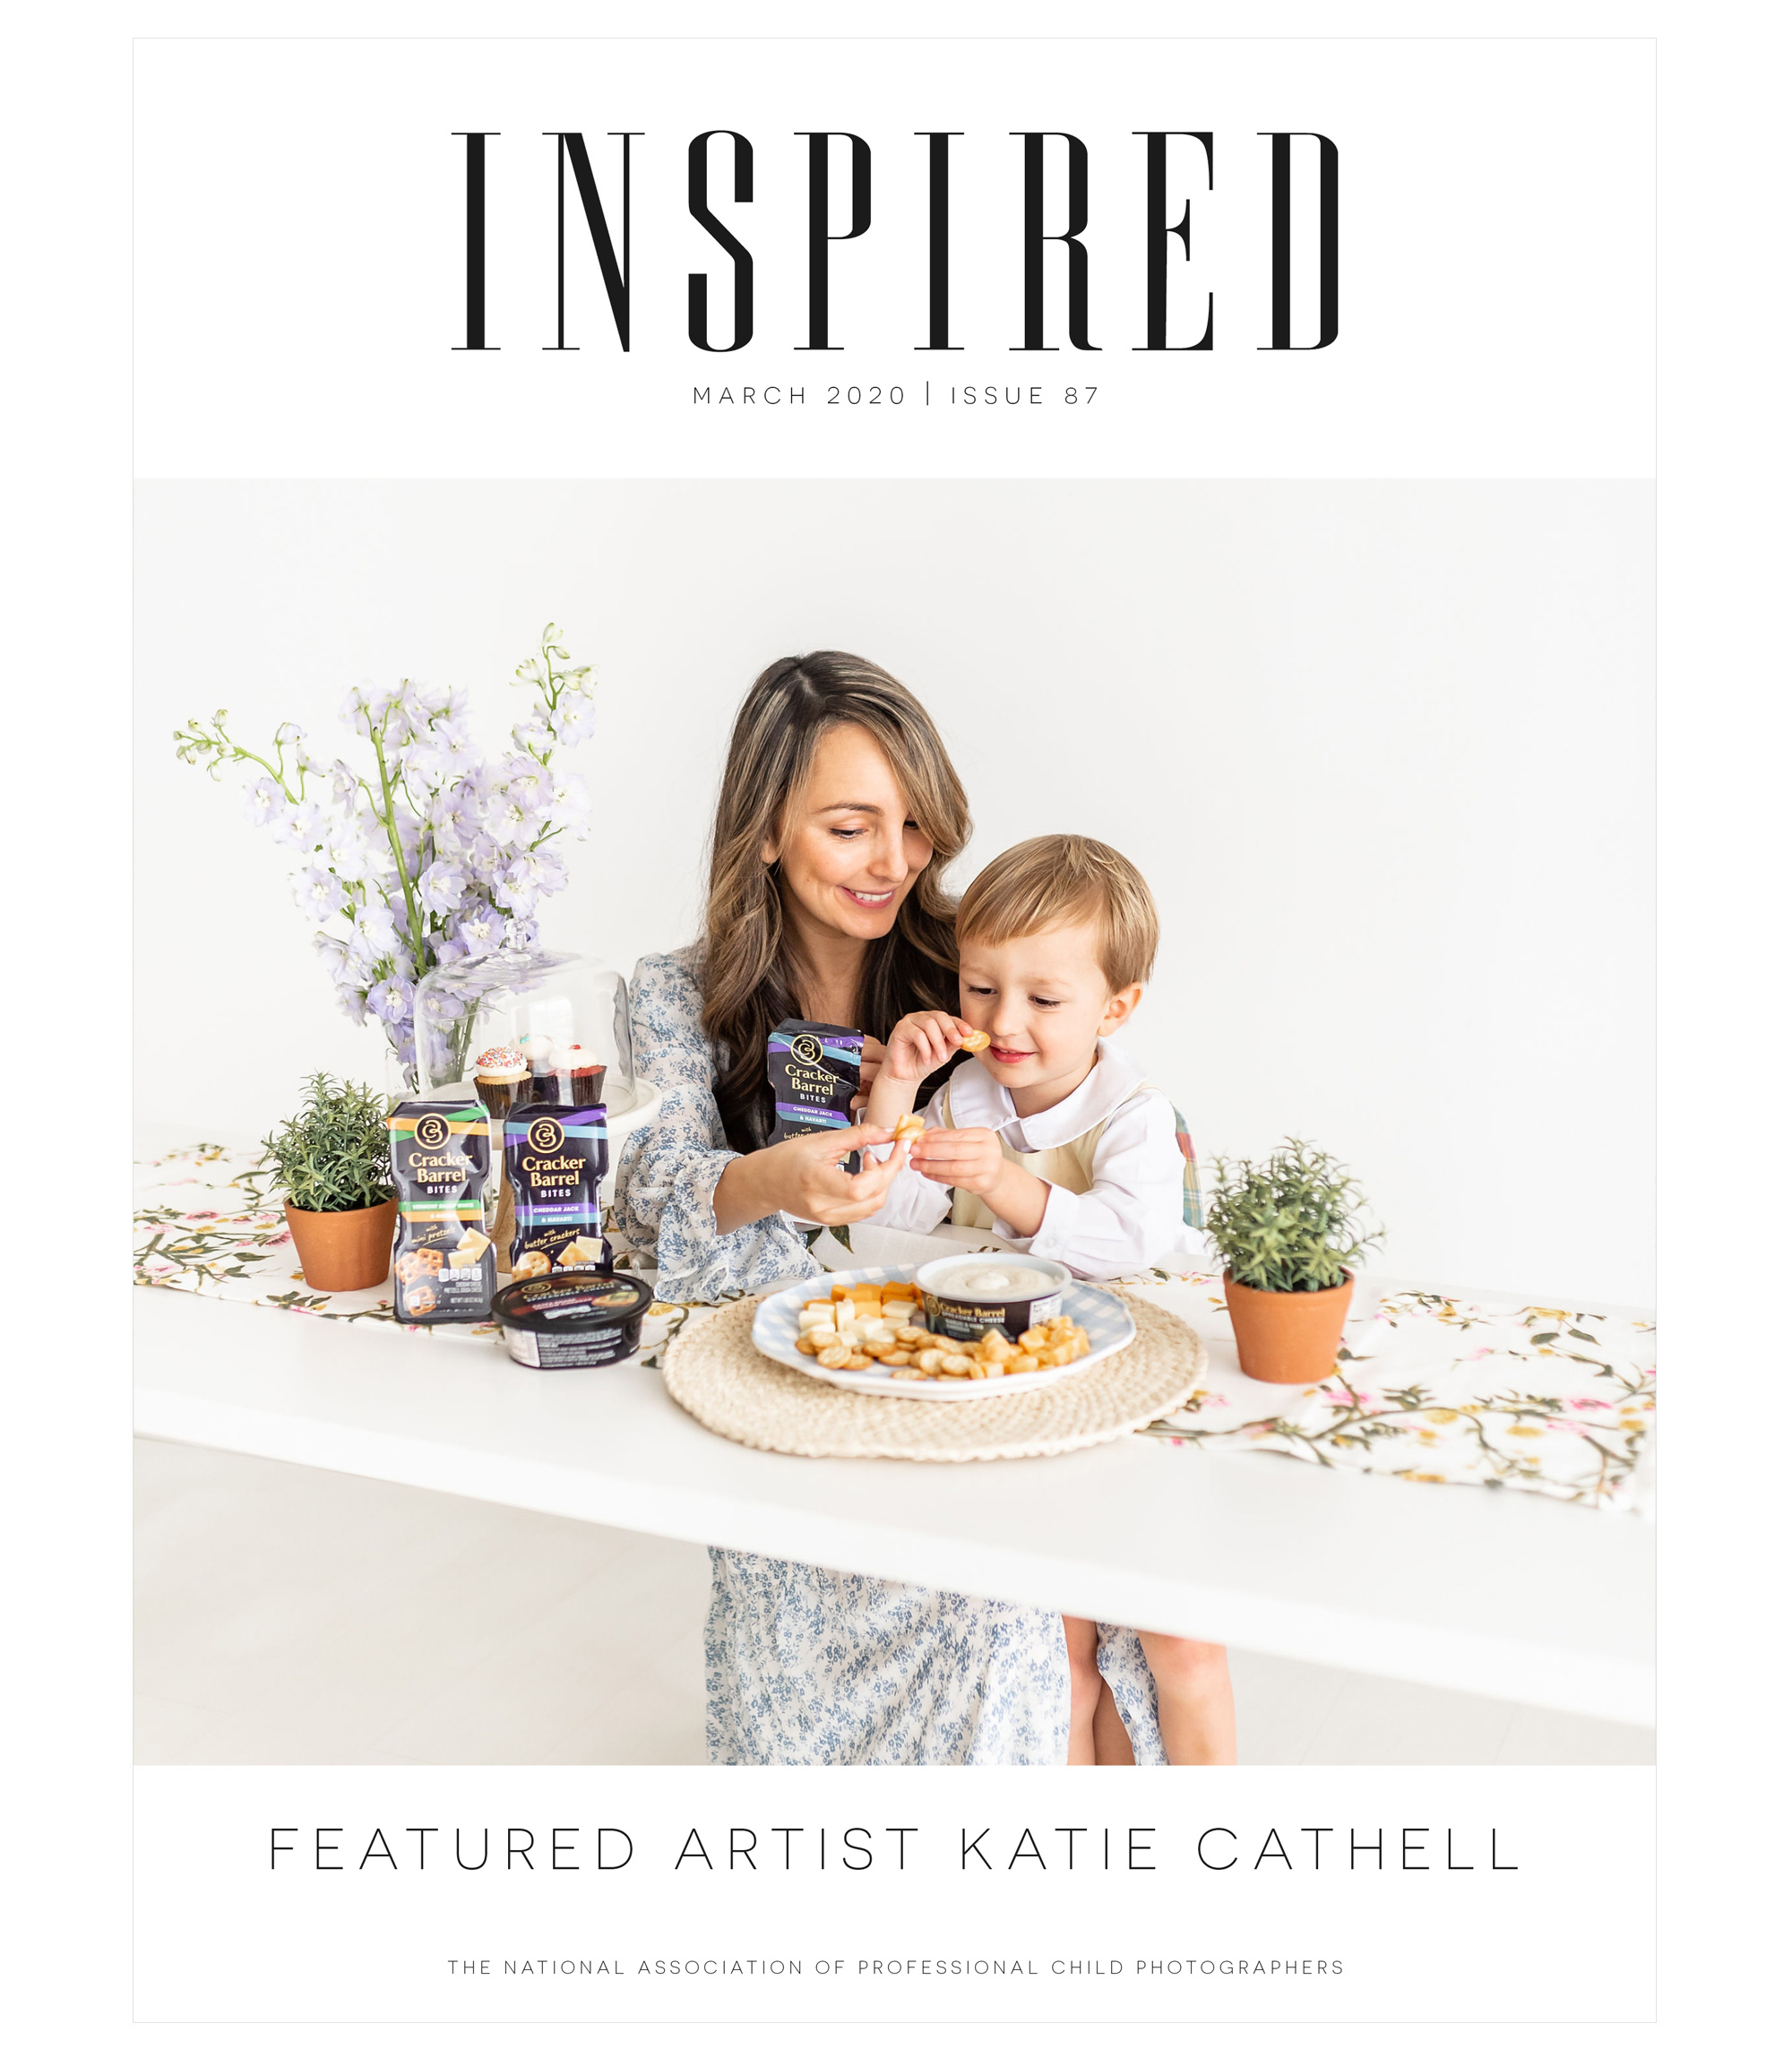 Inspired March 2020, Issue 87, Featured Artist Katie Cathell, The National Association of Professional Child Photographers